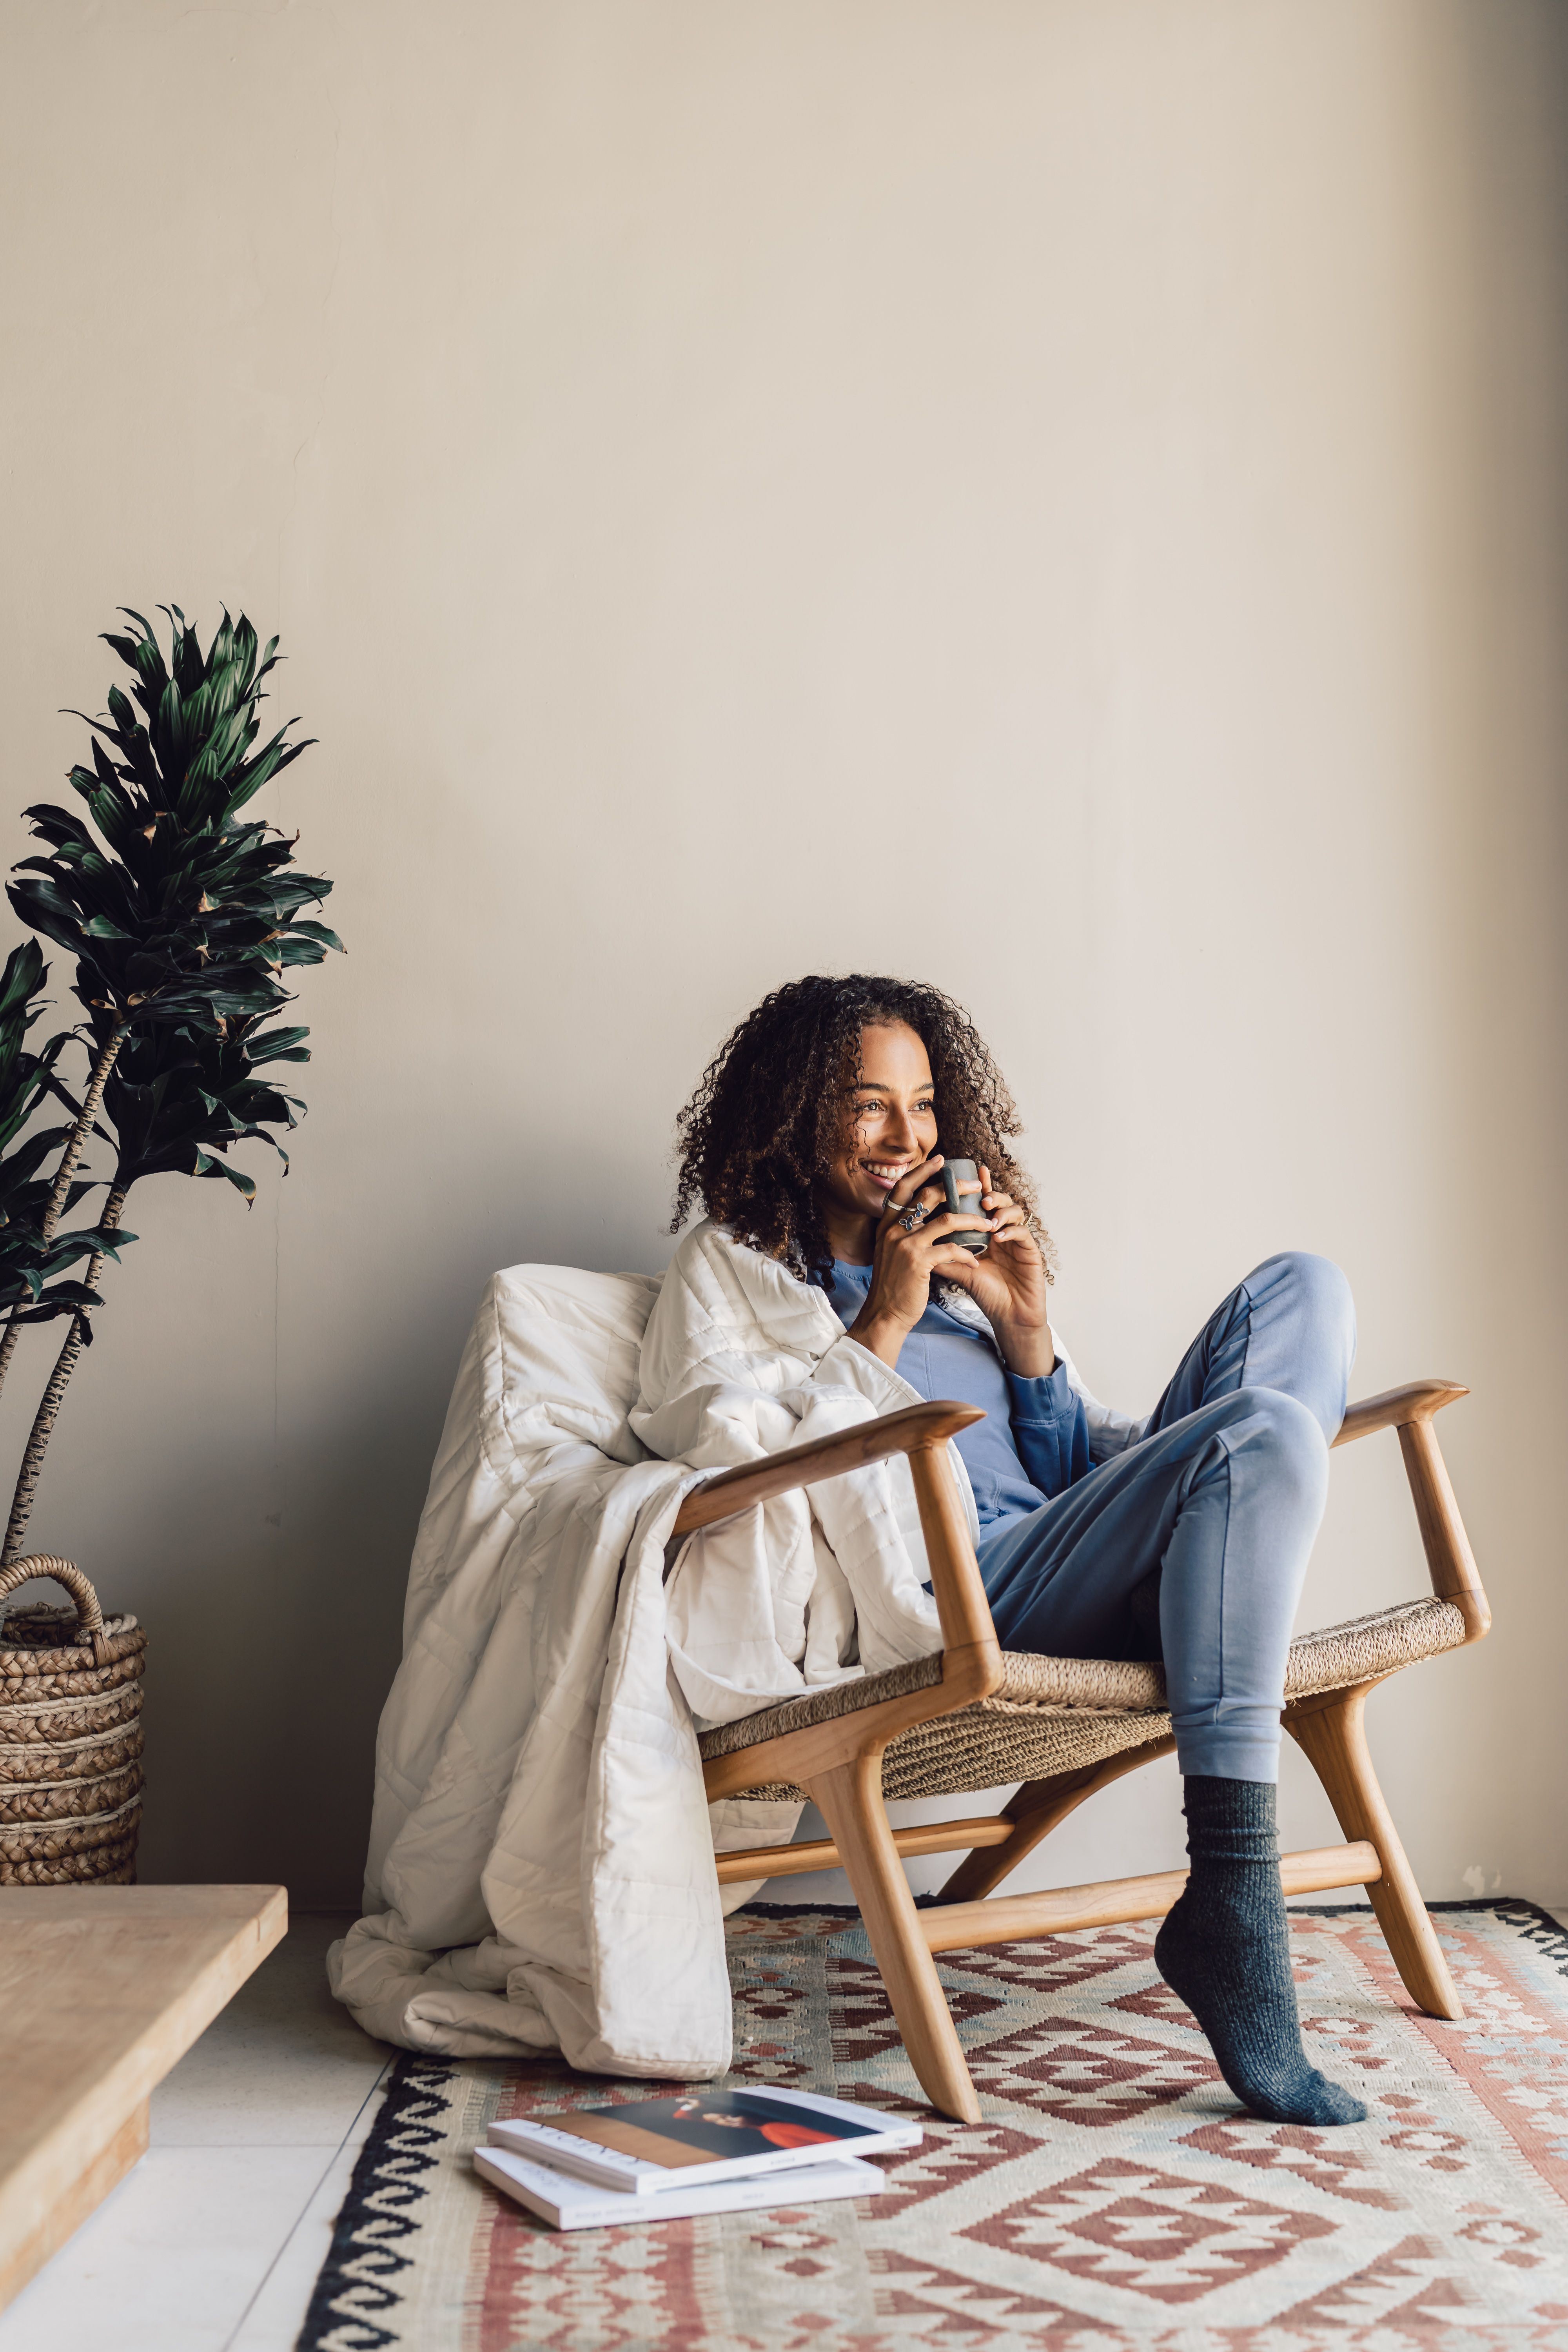 Model sitting in chair with Baloo Living weighted blanket